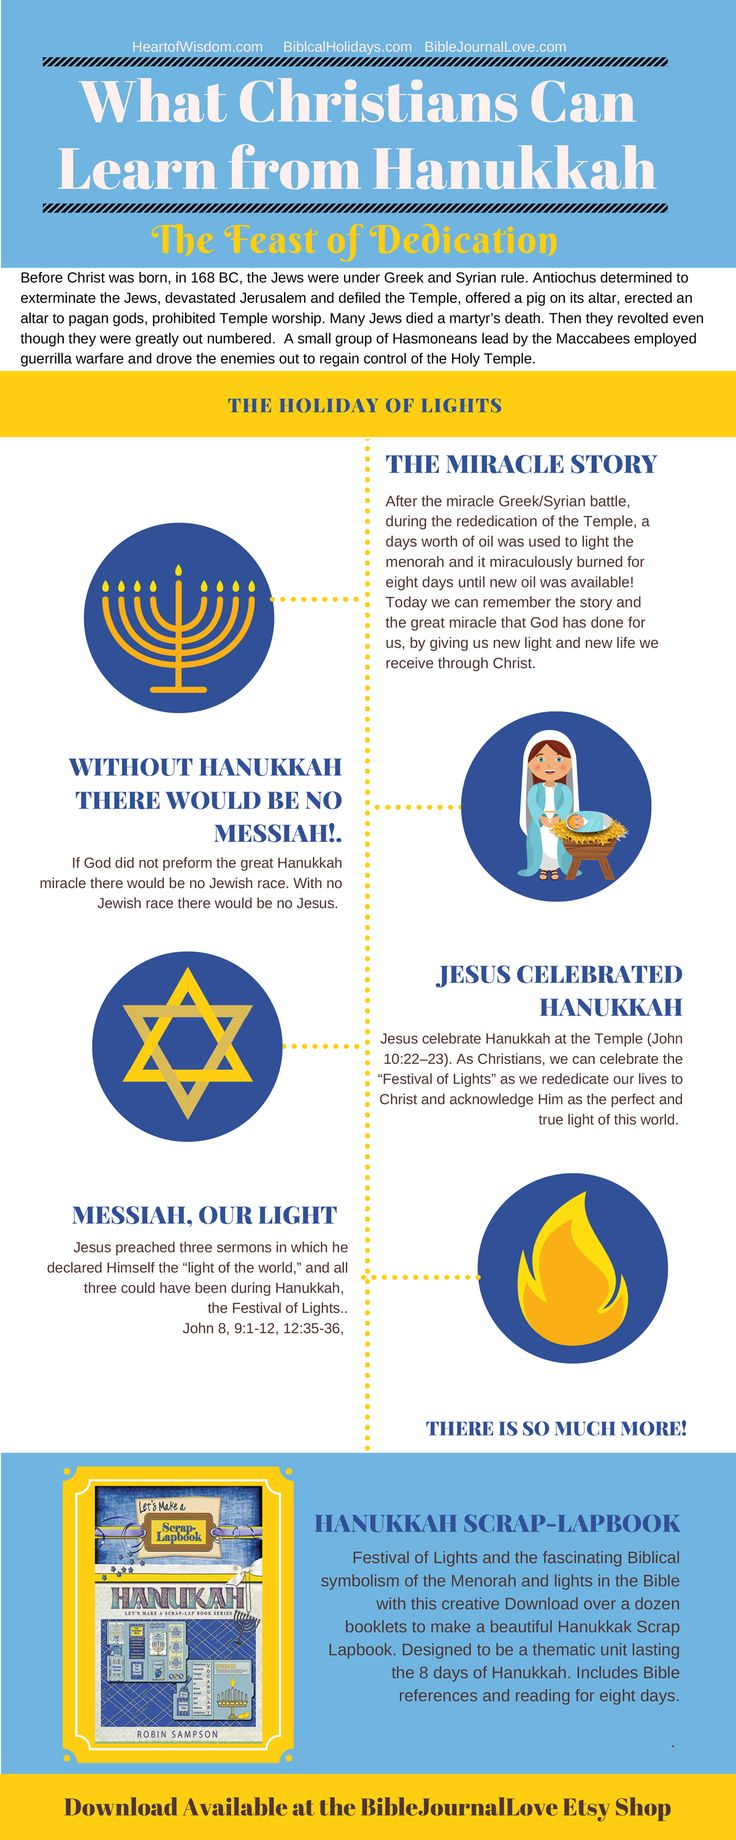 142 best 01 bible holidays hanukkah images on pinterest why are christians celebrating hanukkah buycottarizona Images